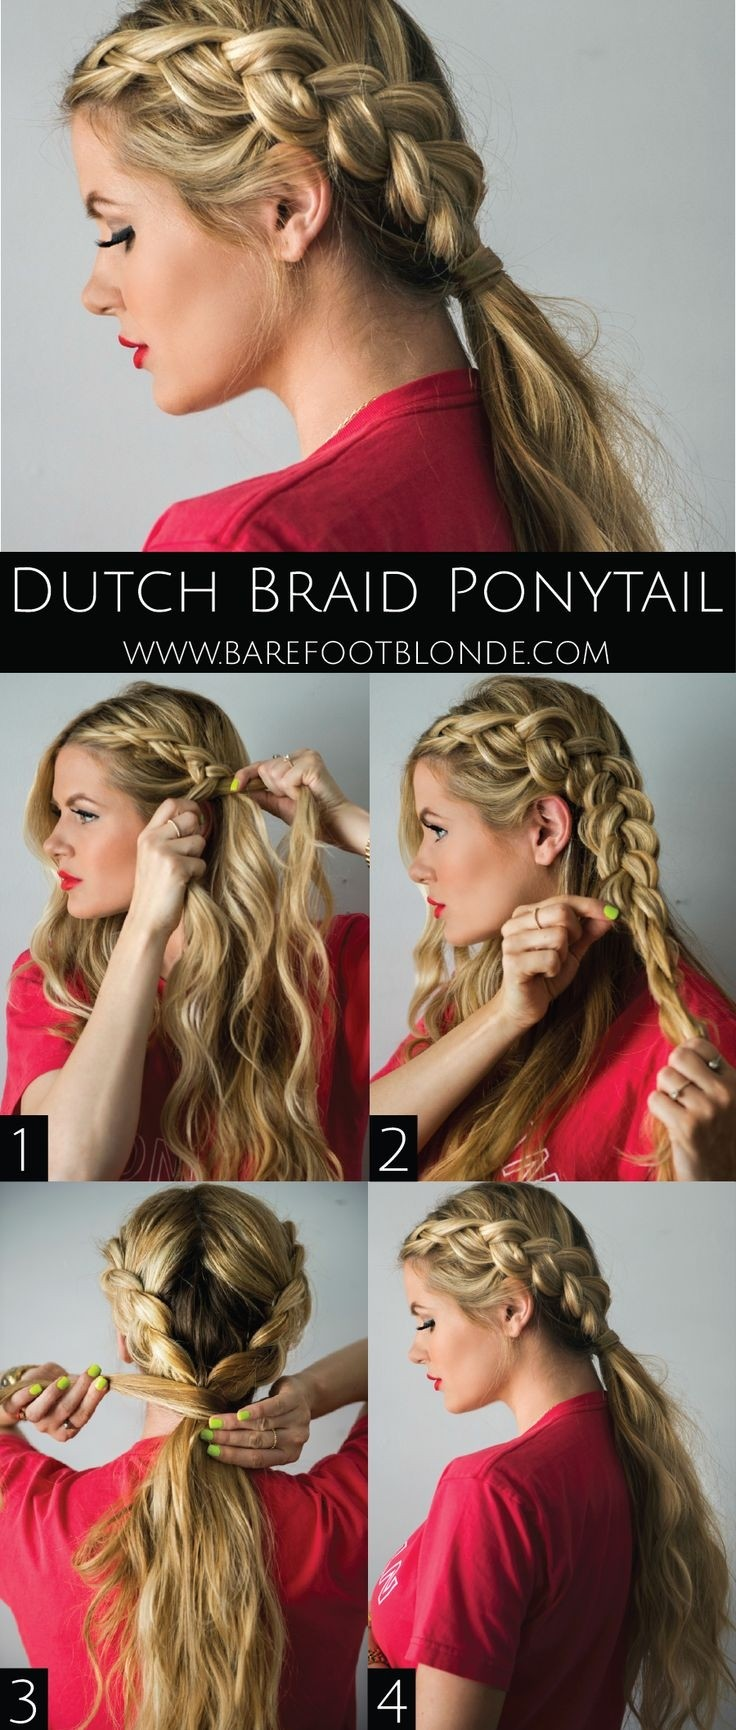 Dutch Braid Ponytail Hairstyle